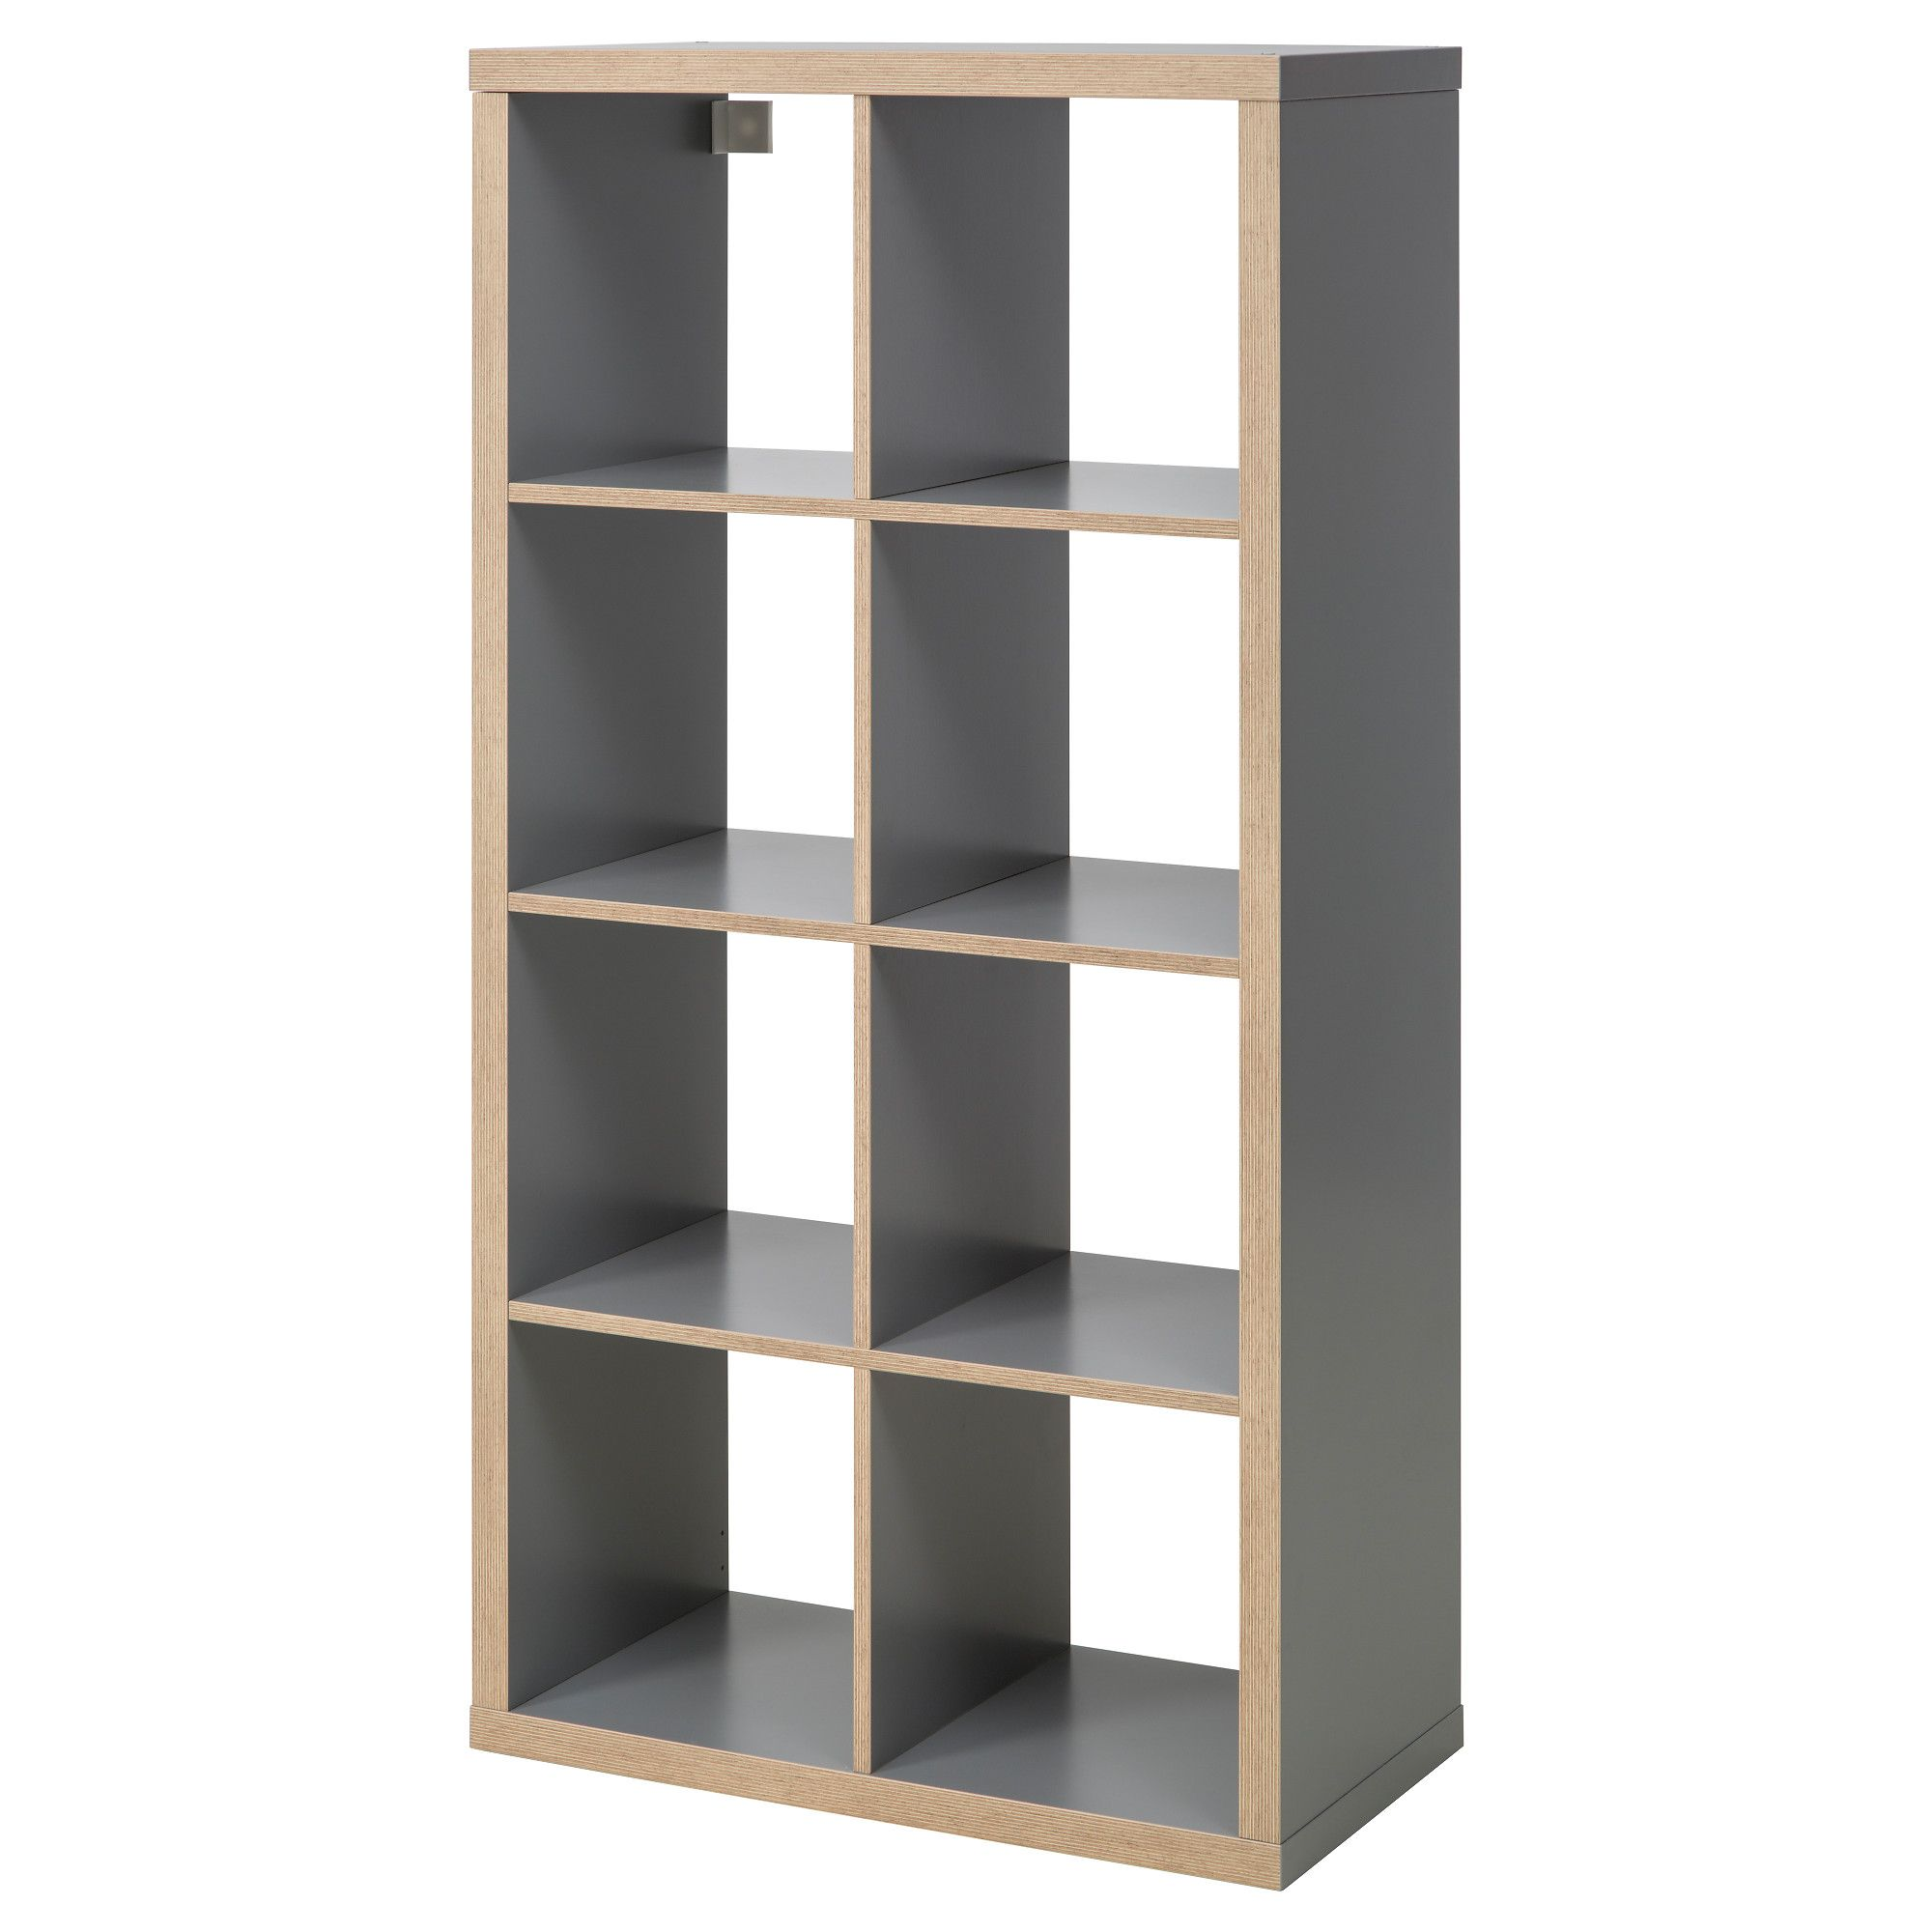 kallax етажерка - ikea | ikea | pinterest | kallax shelf unit, ikea